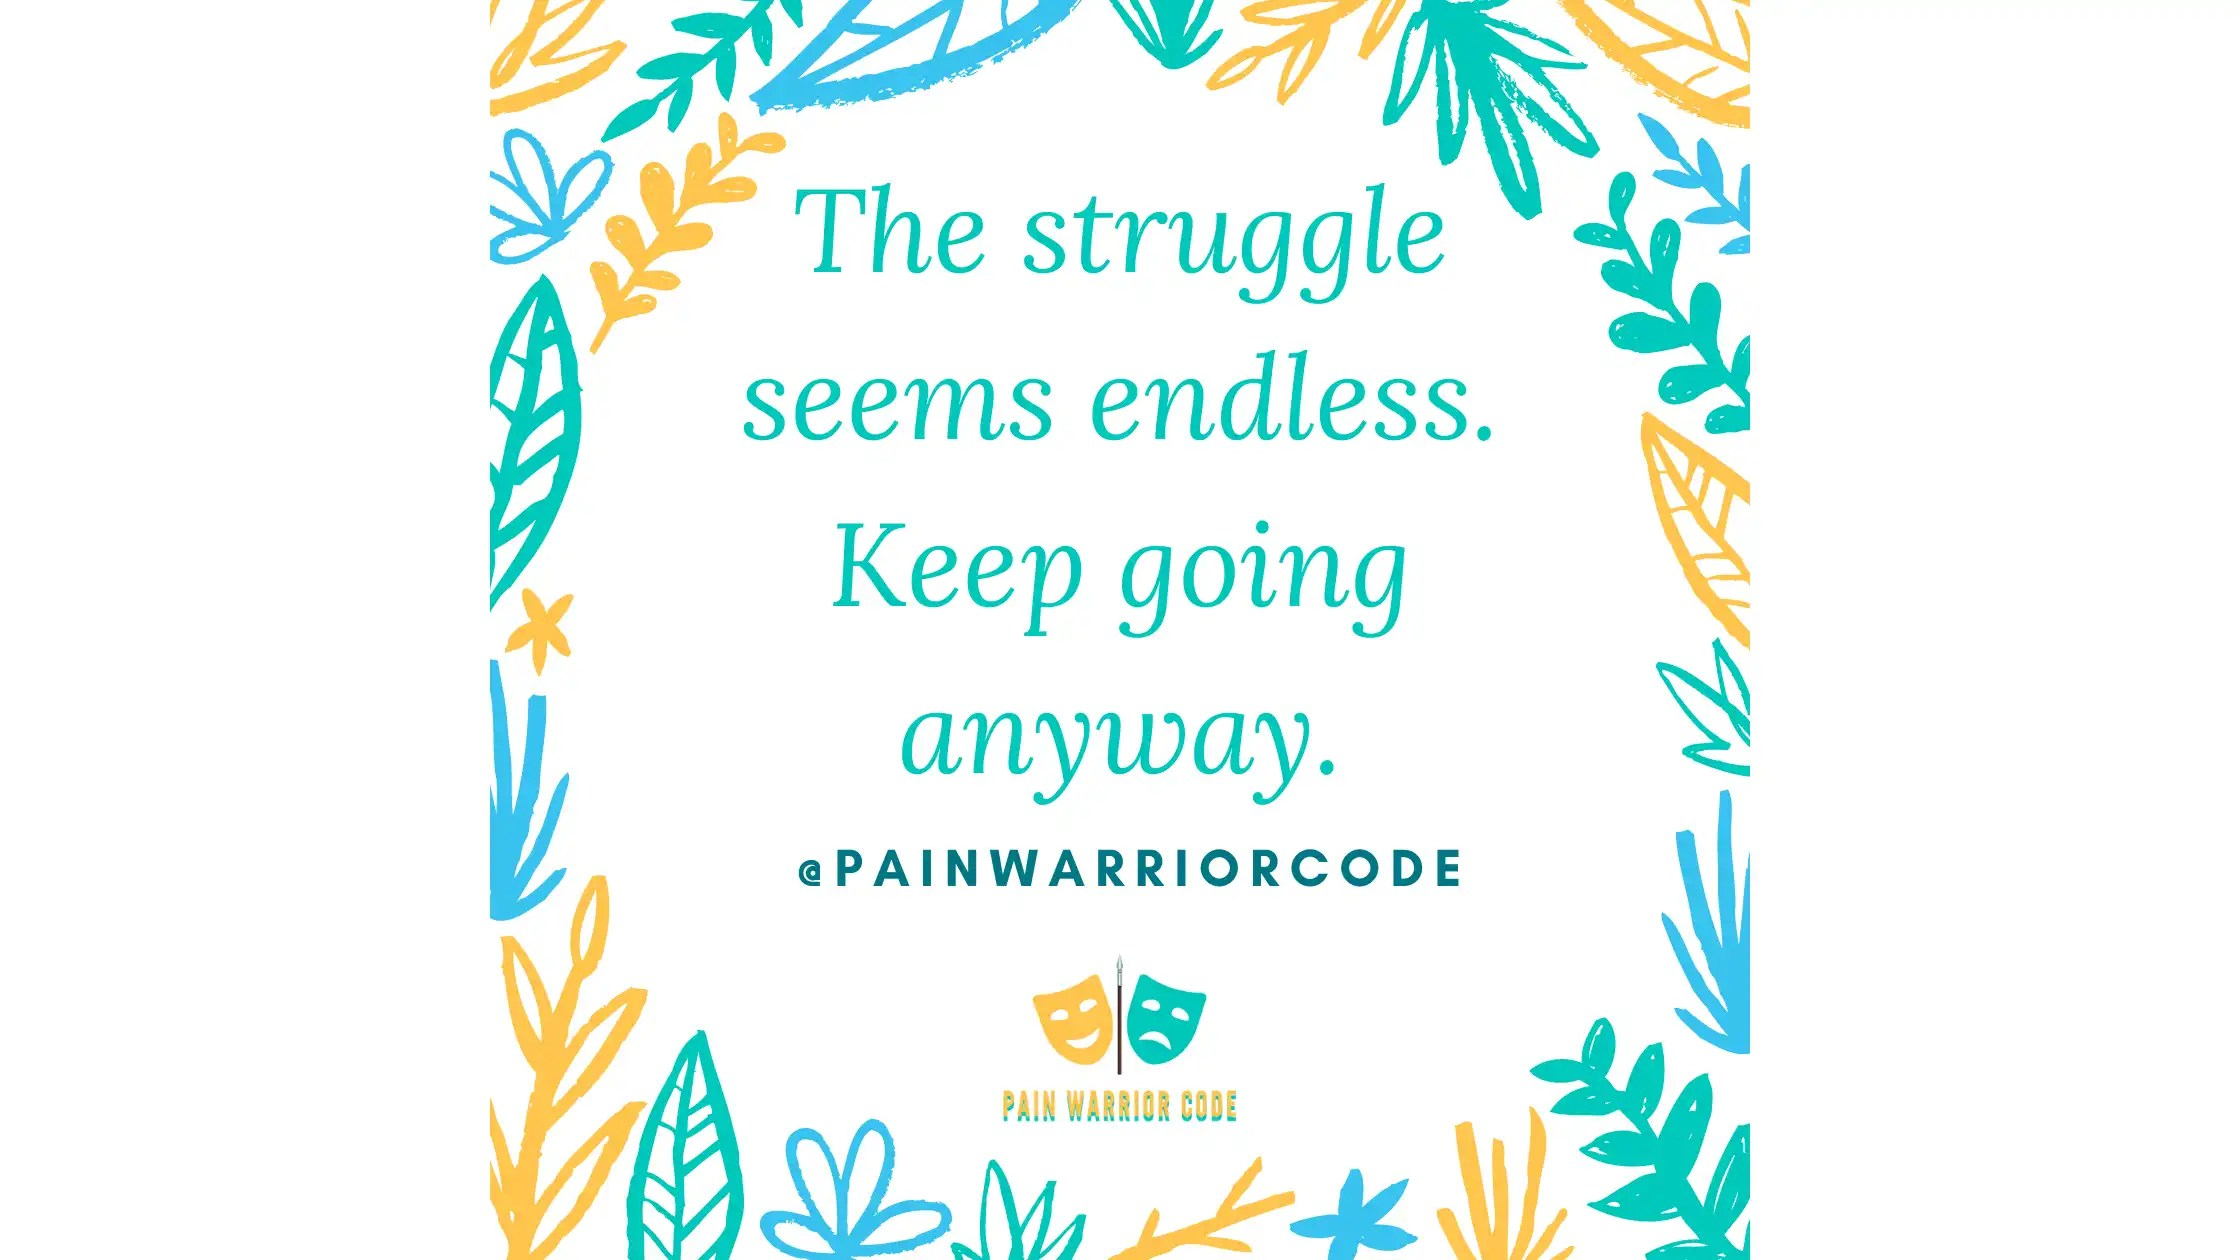 the struggle seems endless. Keep going anyway.